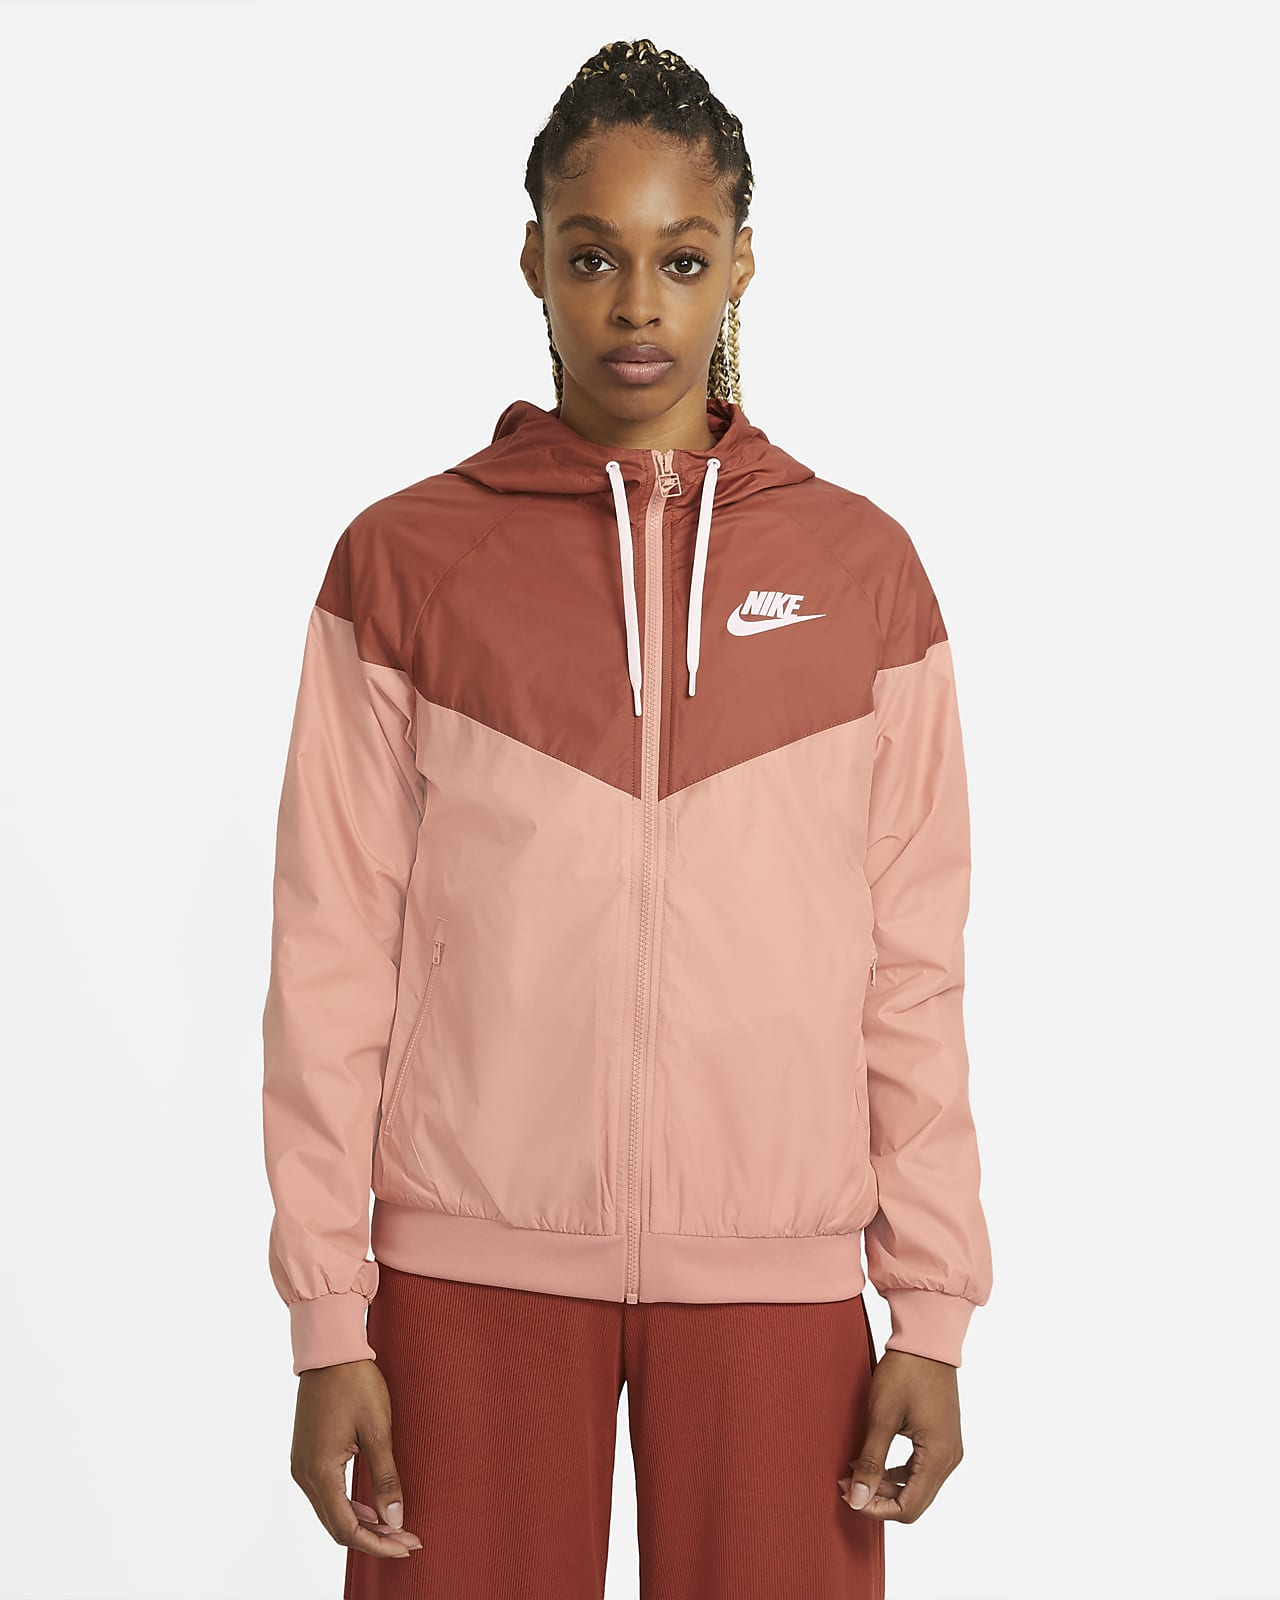 Nike Sportswear Windrunner Women's Windbreaker